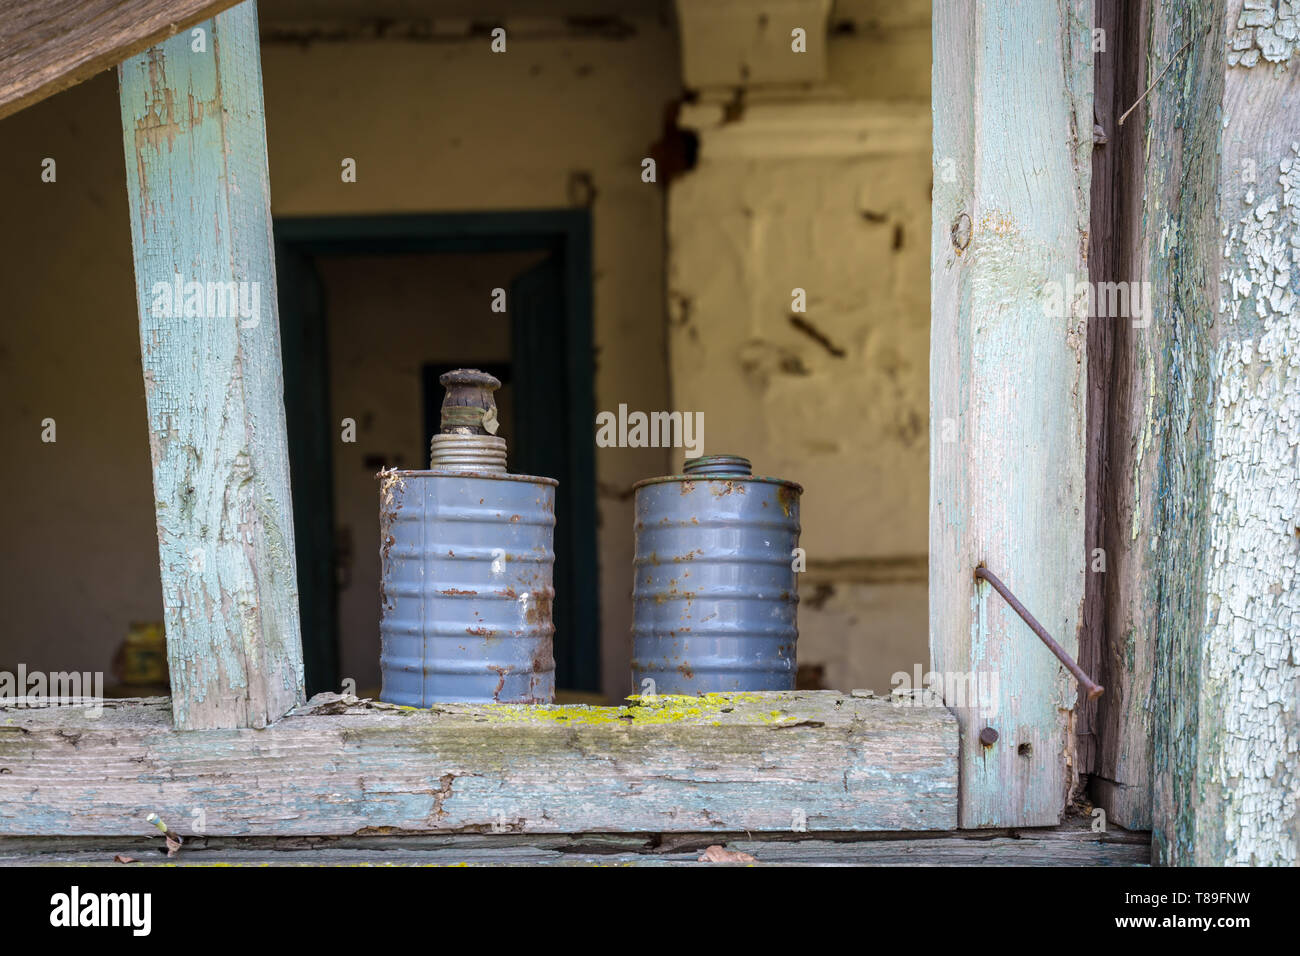 Two metal cans behind a window with broken glass of an old abandoned house in Belarus Chernobyl exclusion zone in Belarus - Stock Image